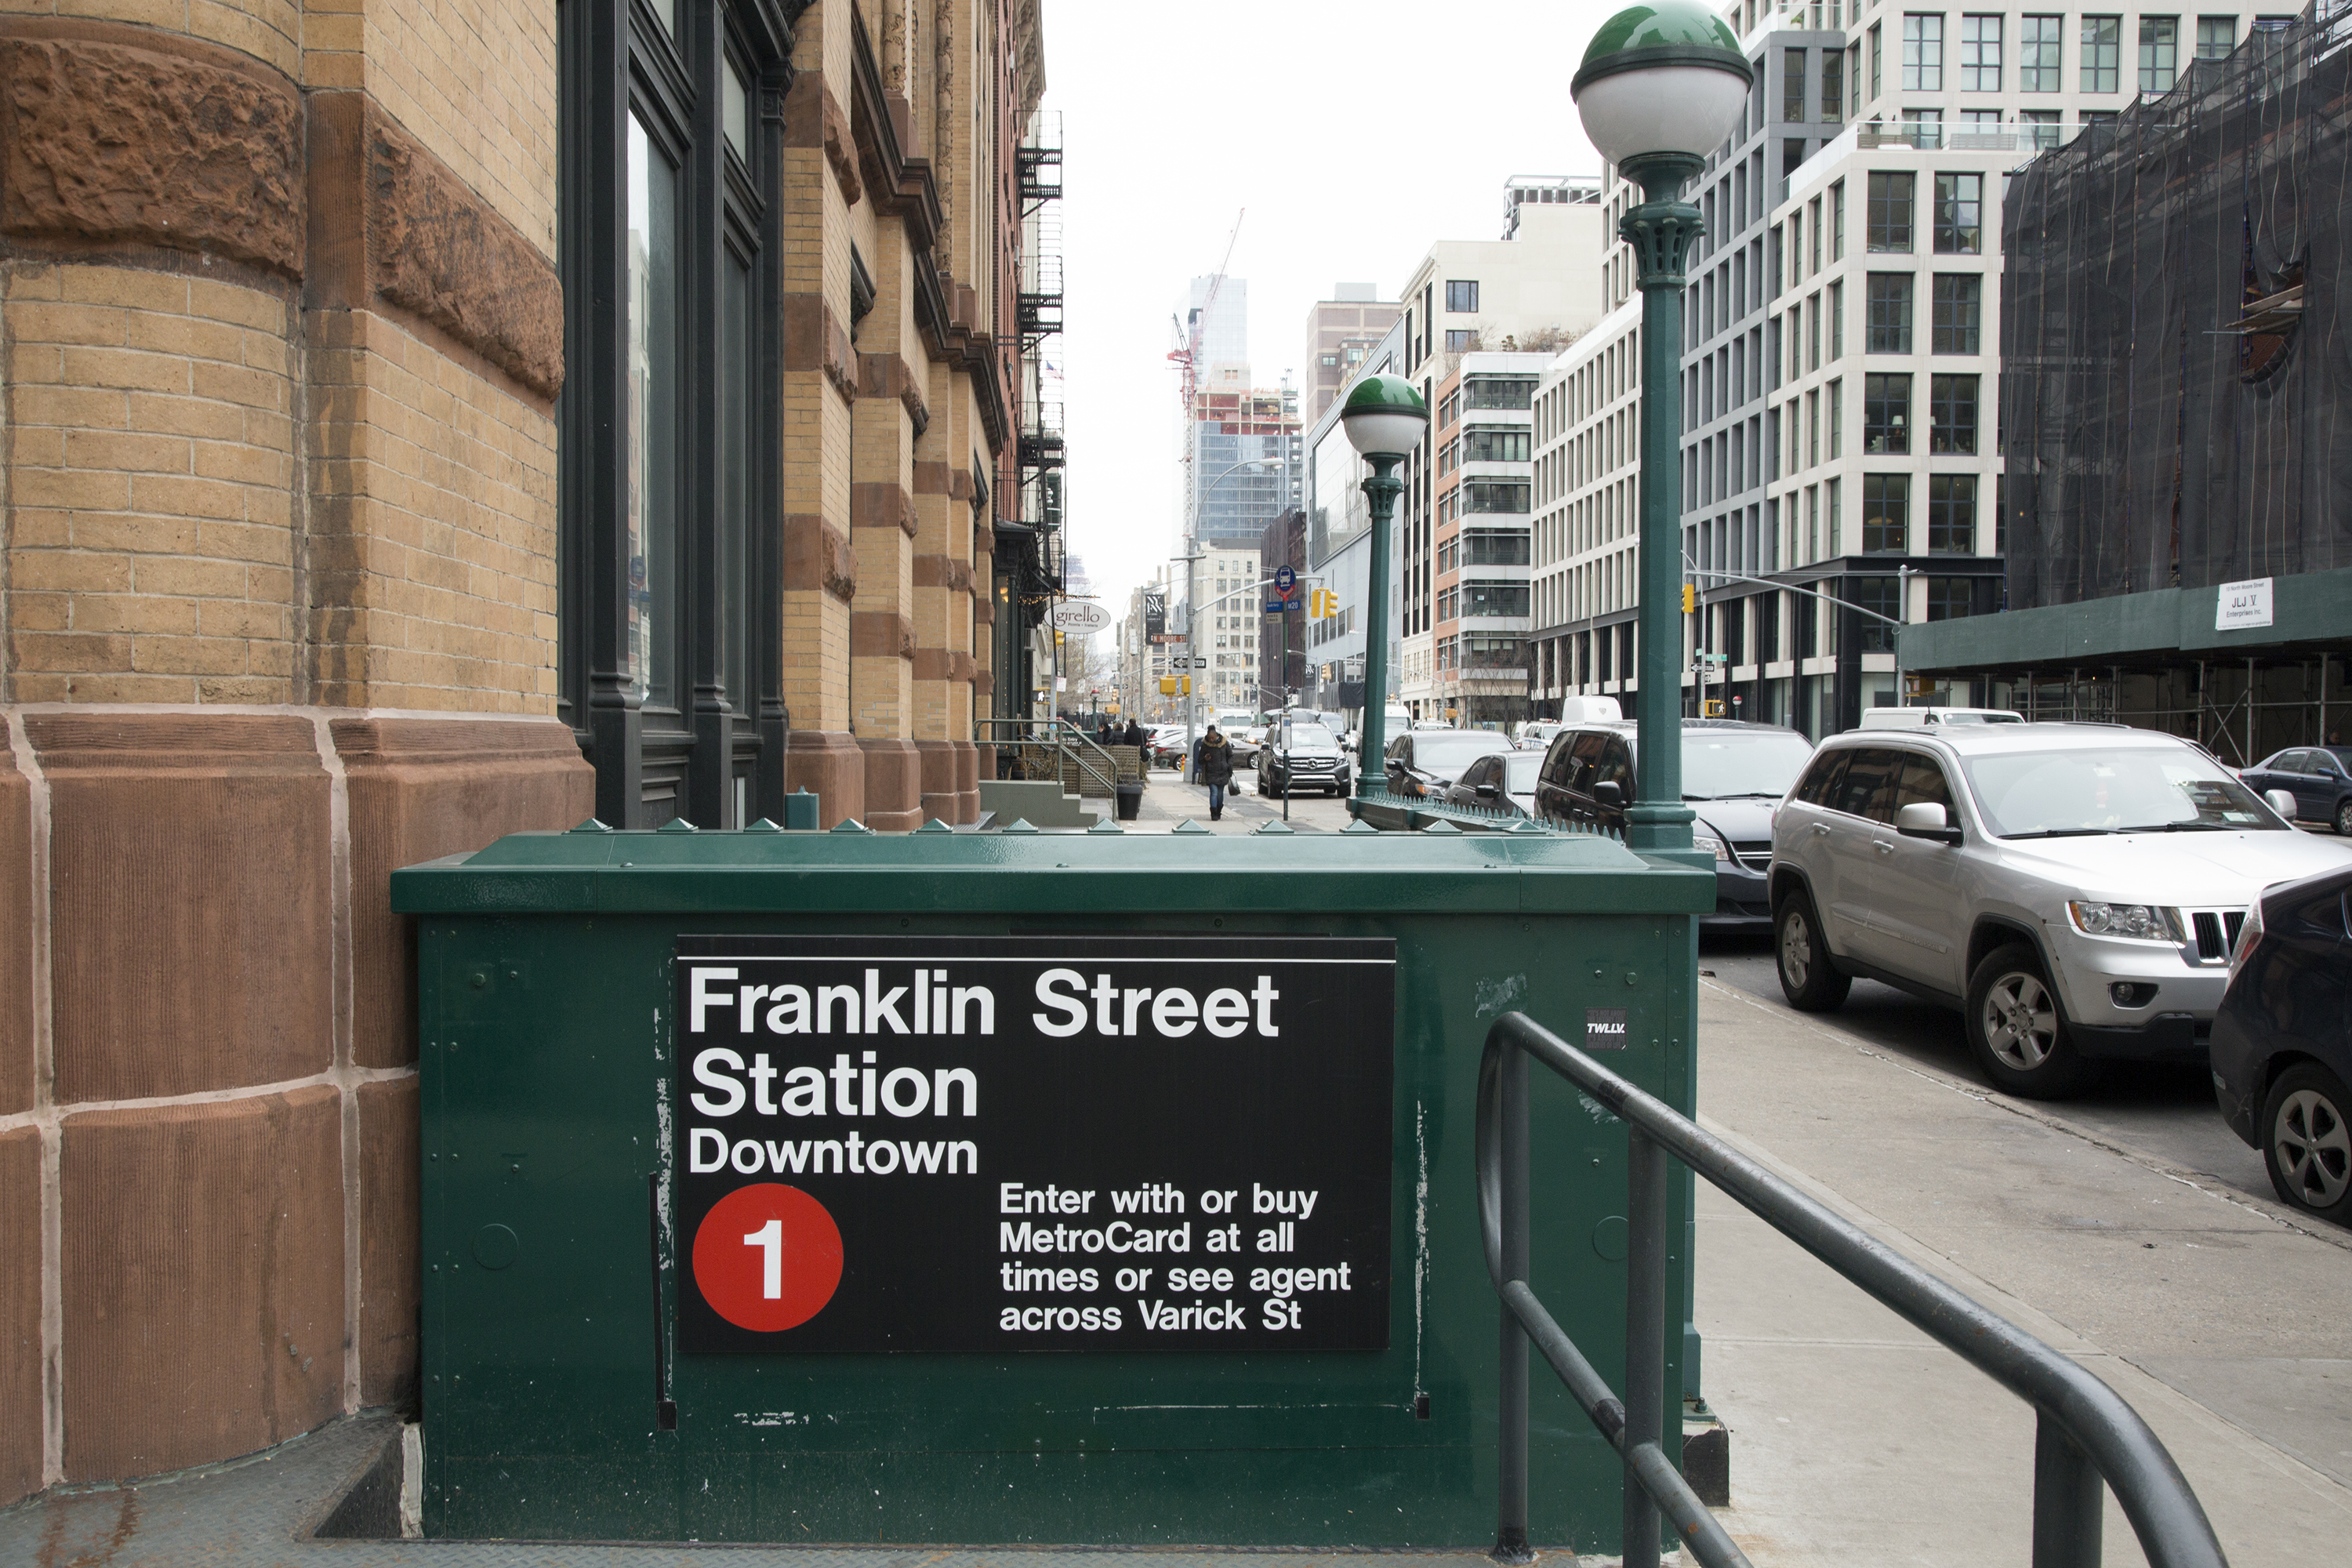 The Franklin Street Station, located at the eastern end of Swift's block, allows for easy access to the rest of the city, should Swift decide to ride the subway.